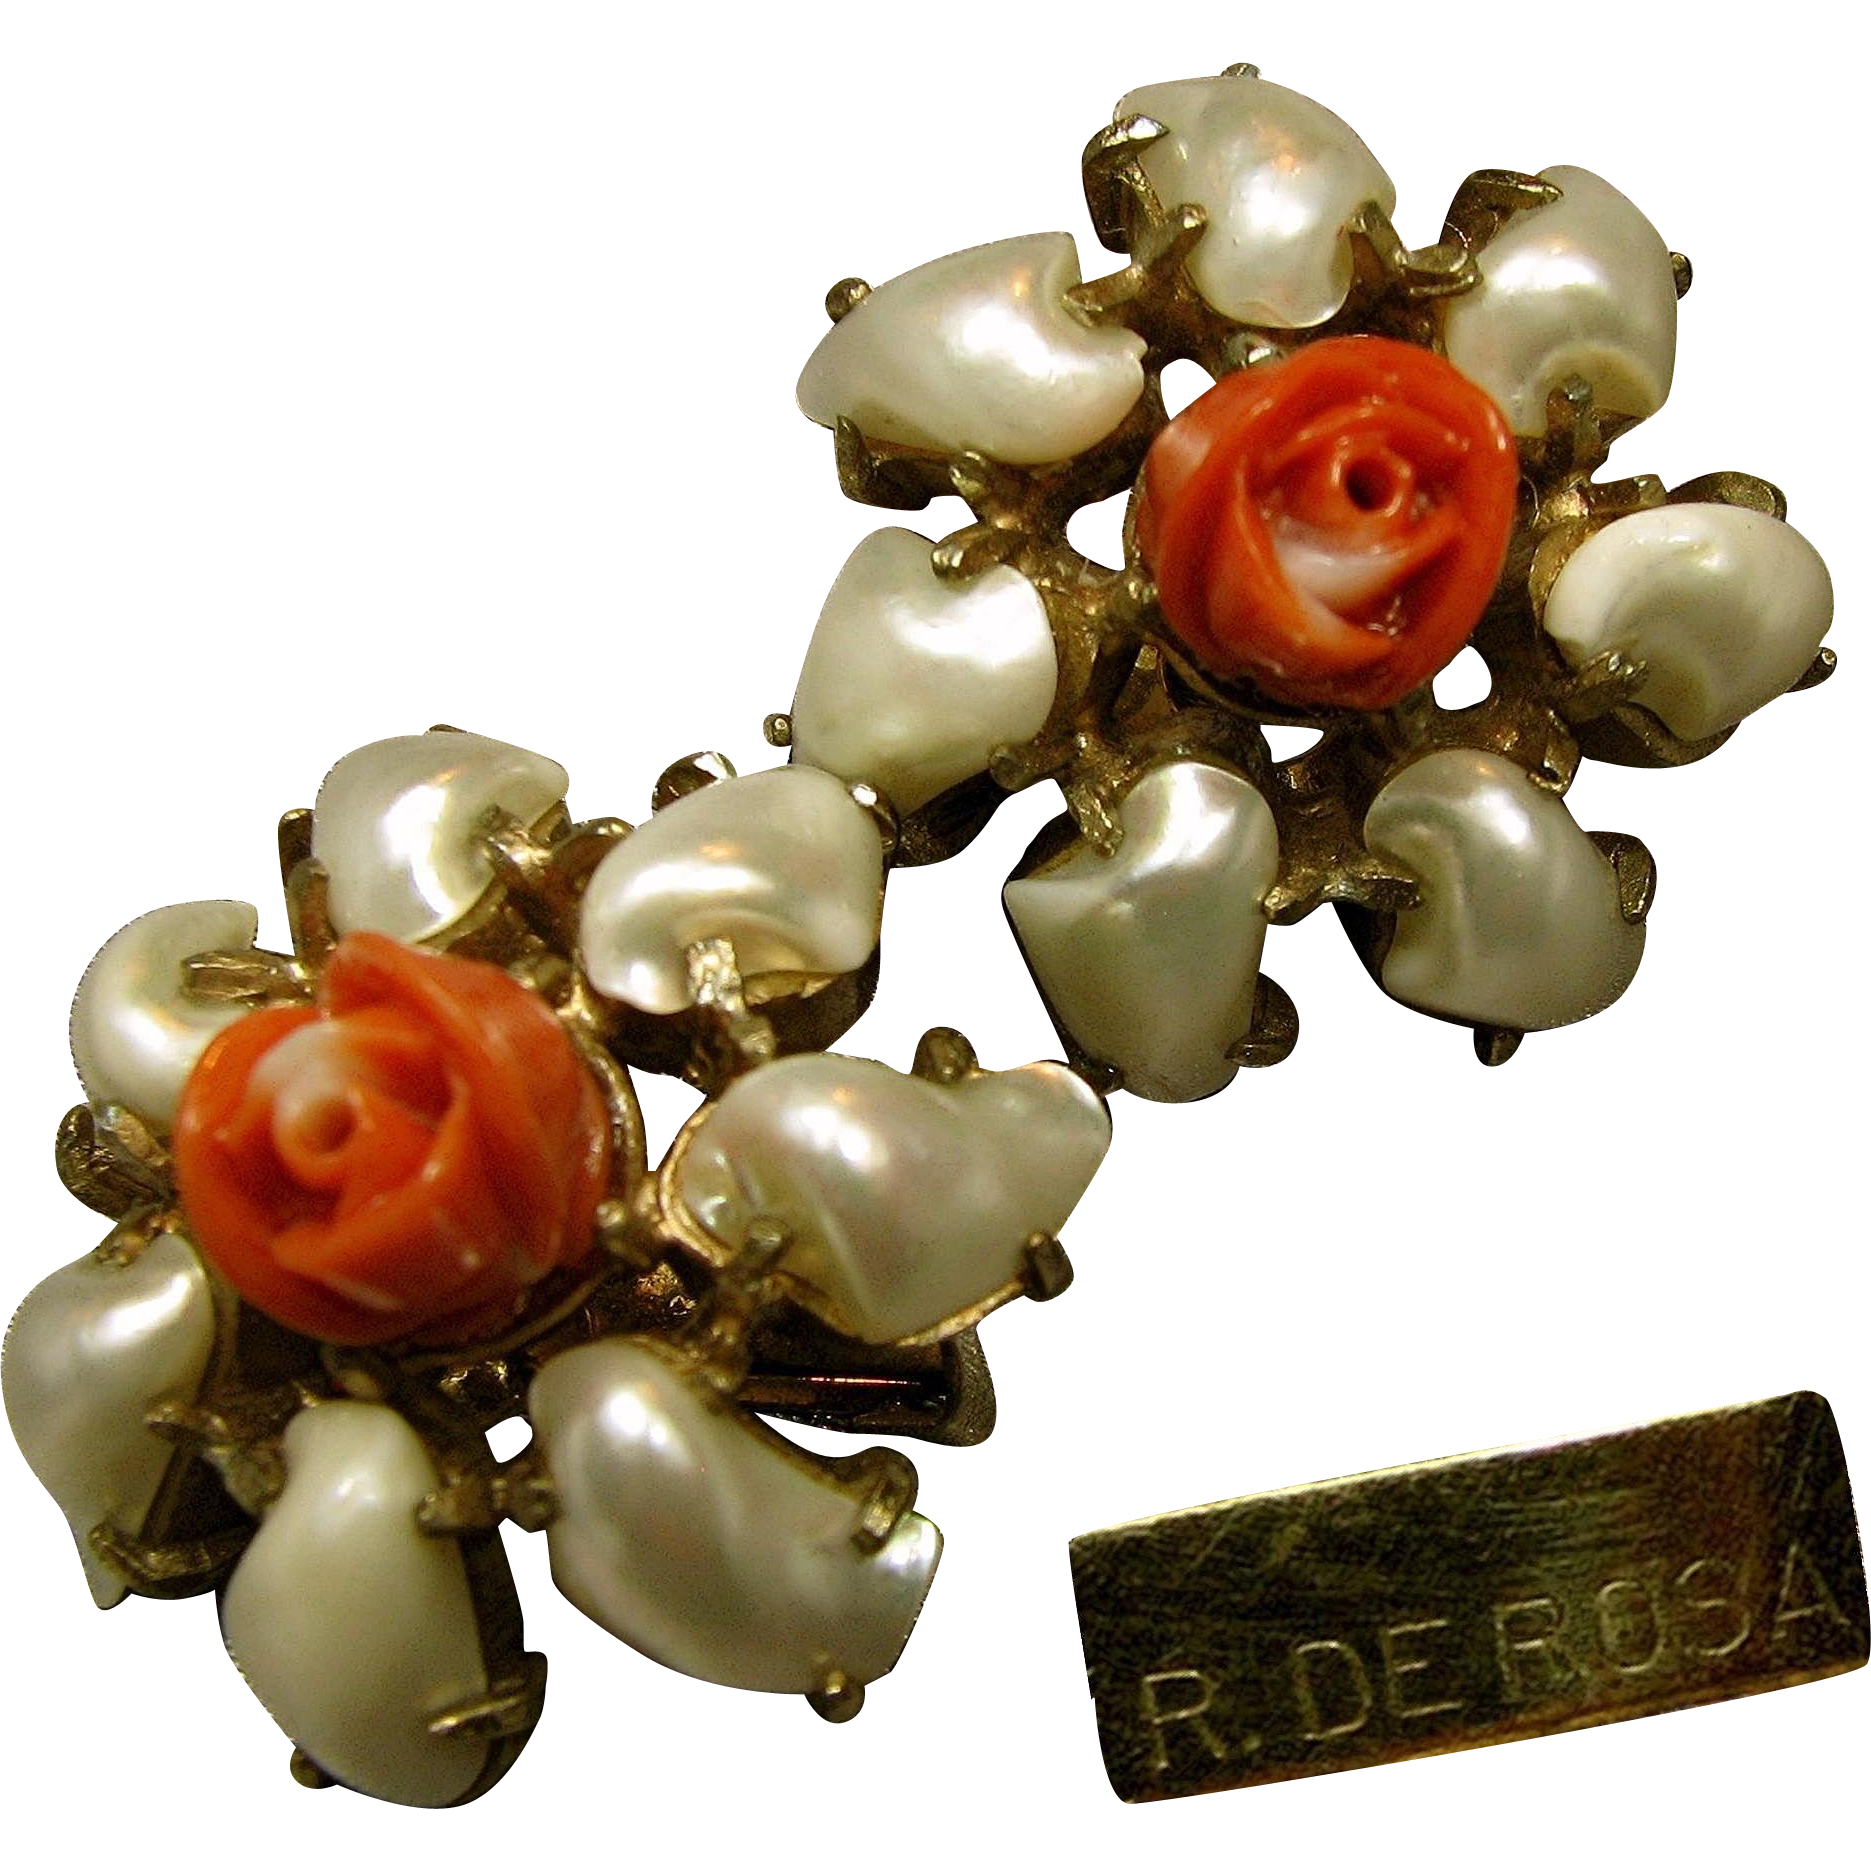 Vintage De Rosa Floral Earrings Pearlescent Petals w/ Faux Coral Centers